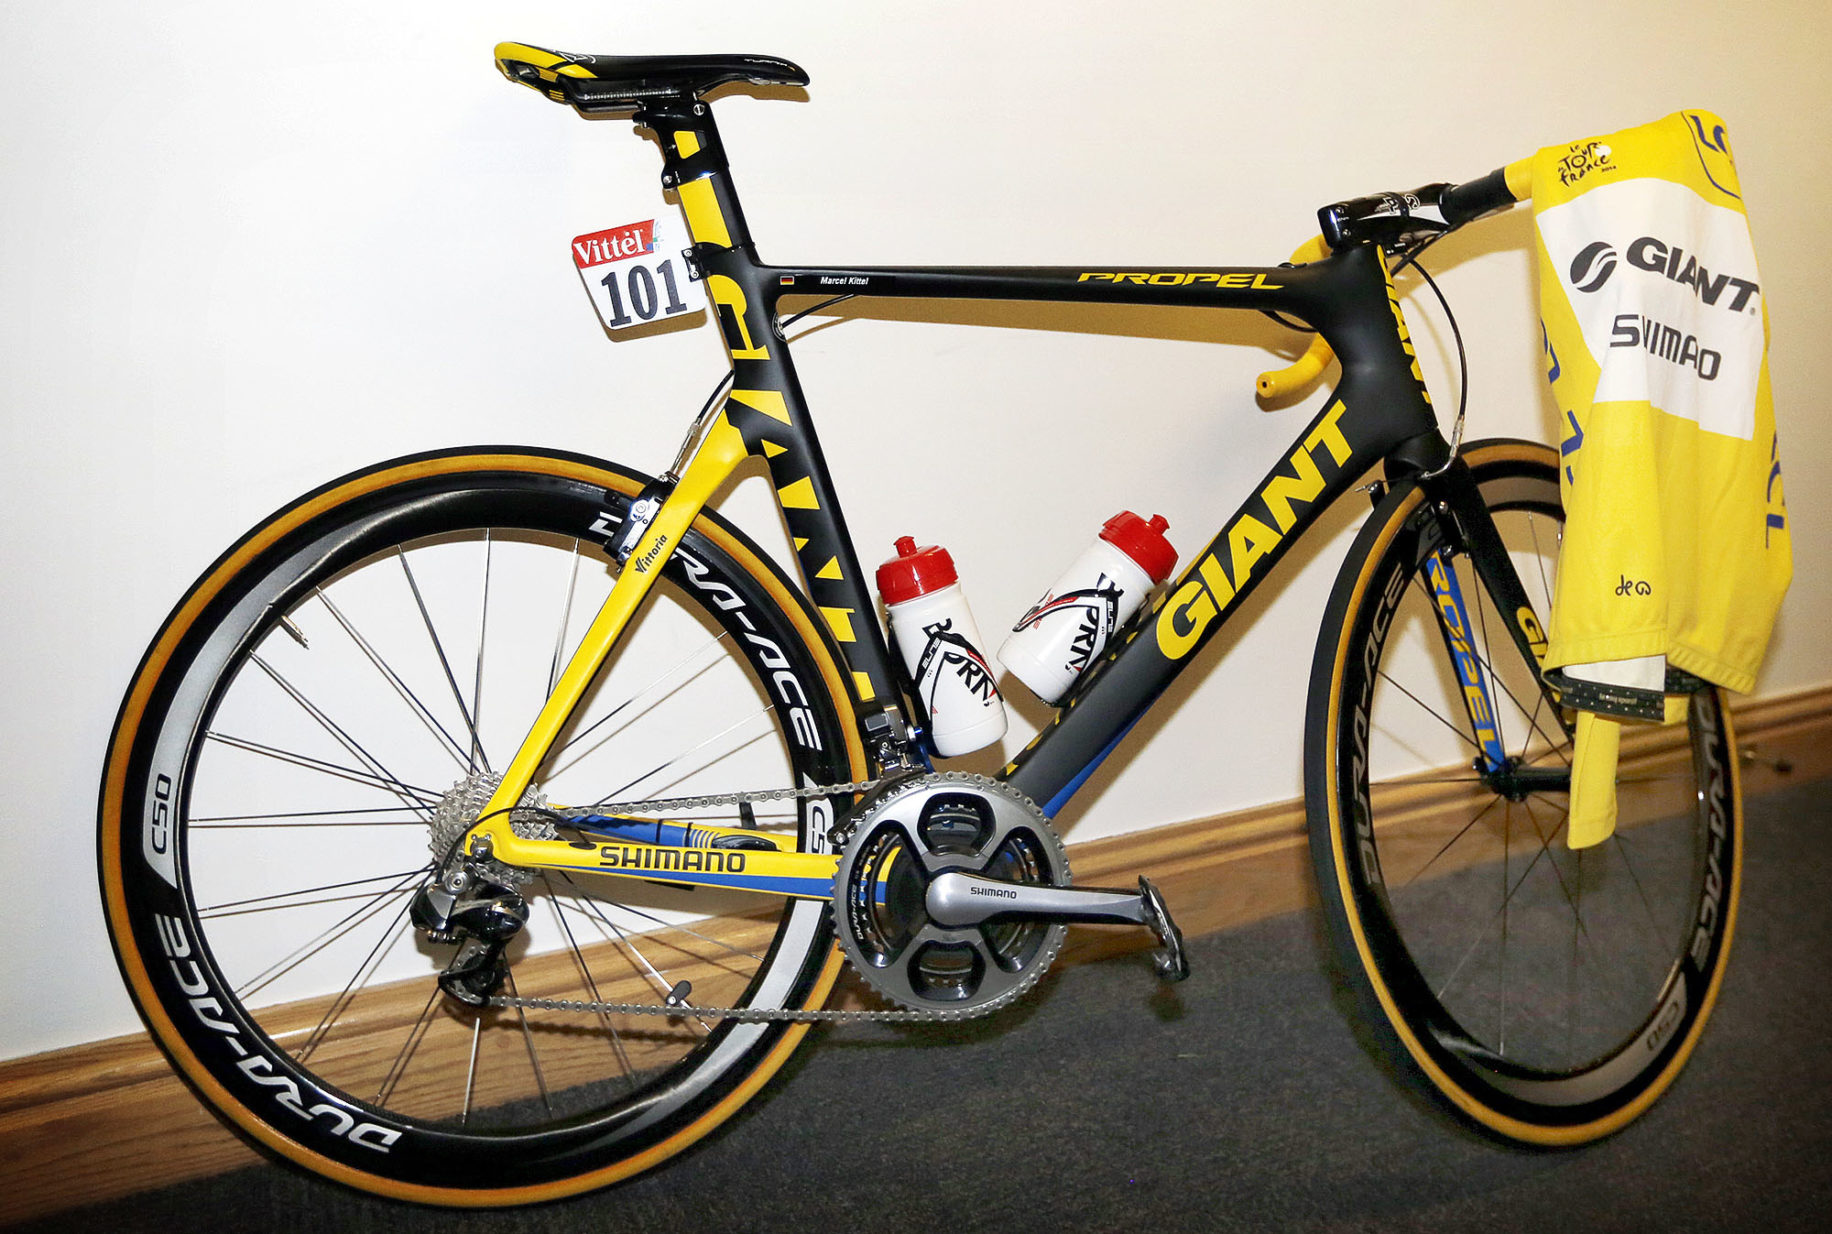 Marcel Kittel Gets Special Giant Propel For Stage 2